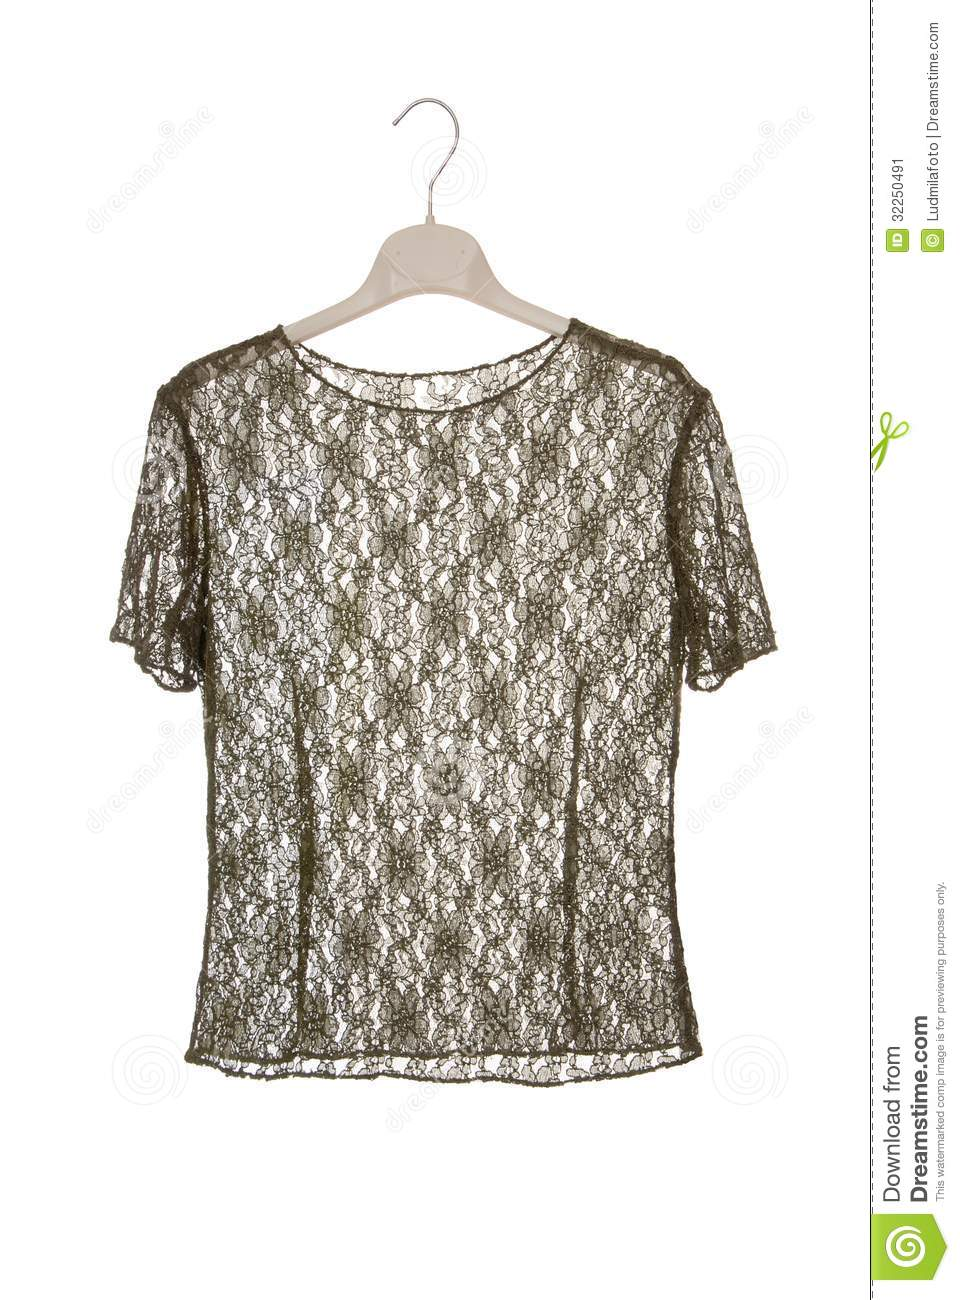 guipure blouse stock image  image of knitted  dress